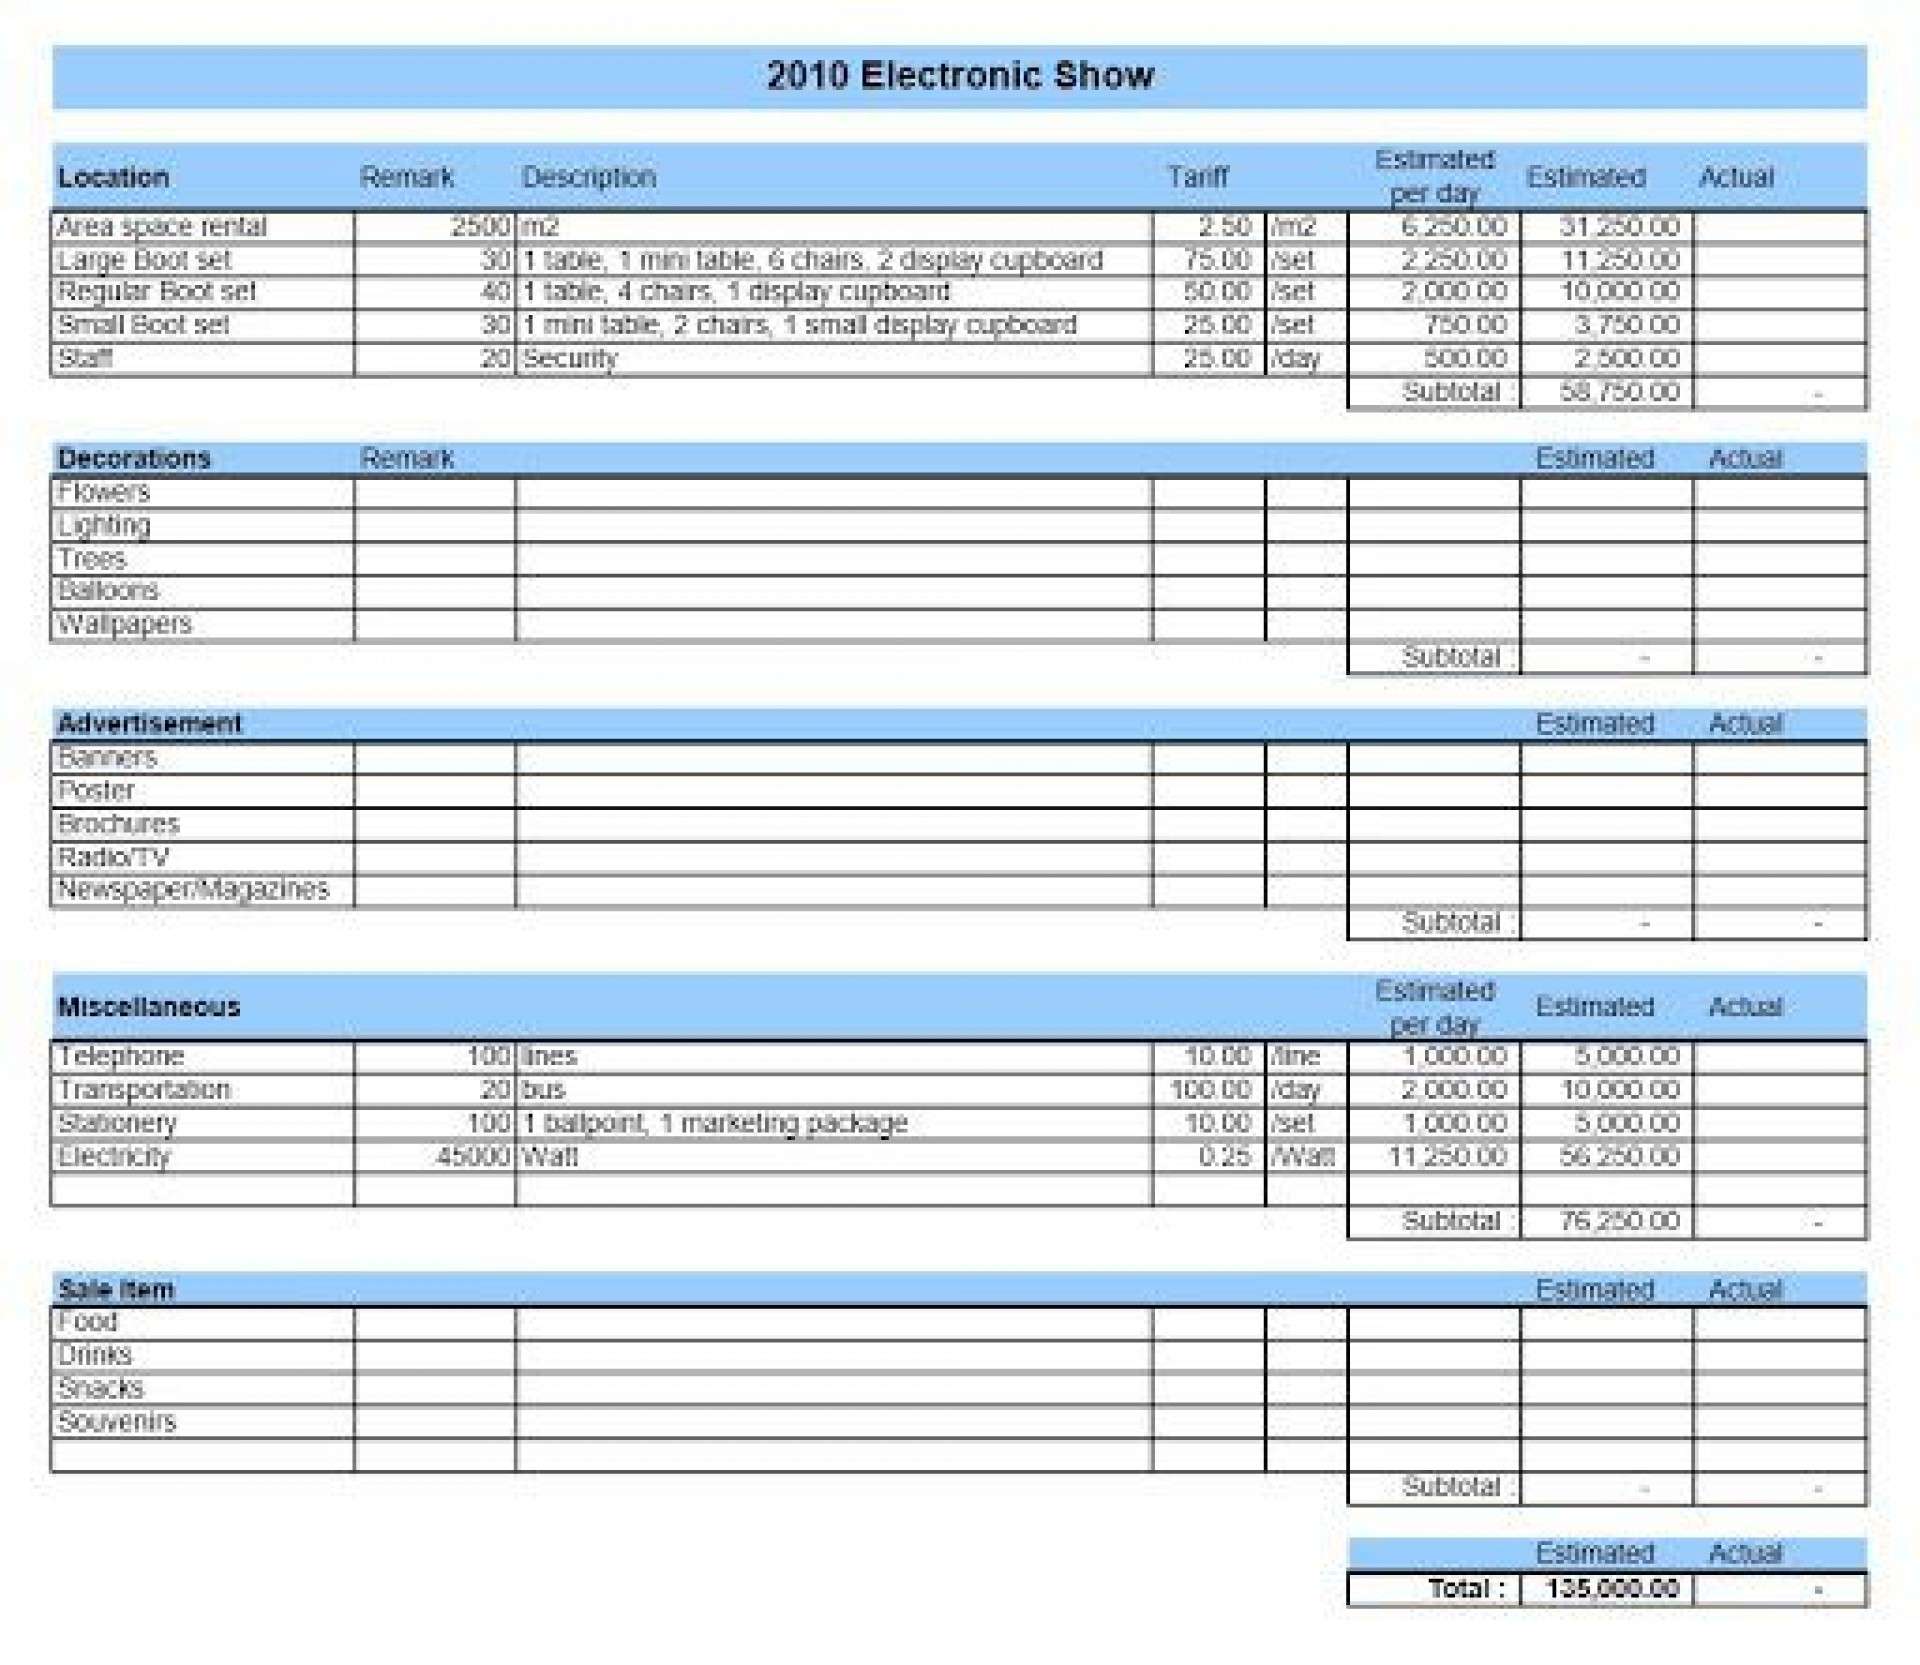 002 Astounding Event Budget Template Excel Sample  Download 2010 Planner1920